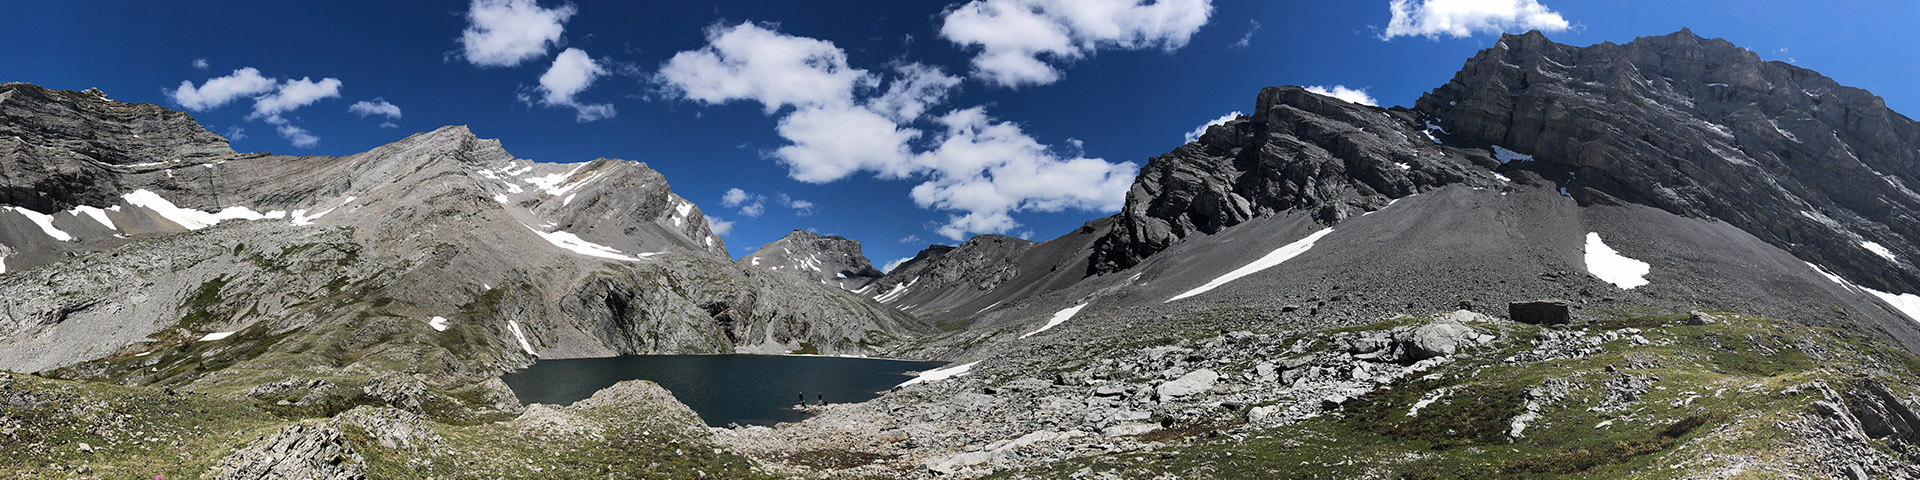 Panorama from the Headwall Lakes hike from Smith-Dorrien Trail in Kananaskis near Canmore